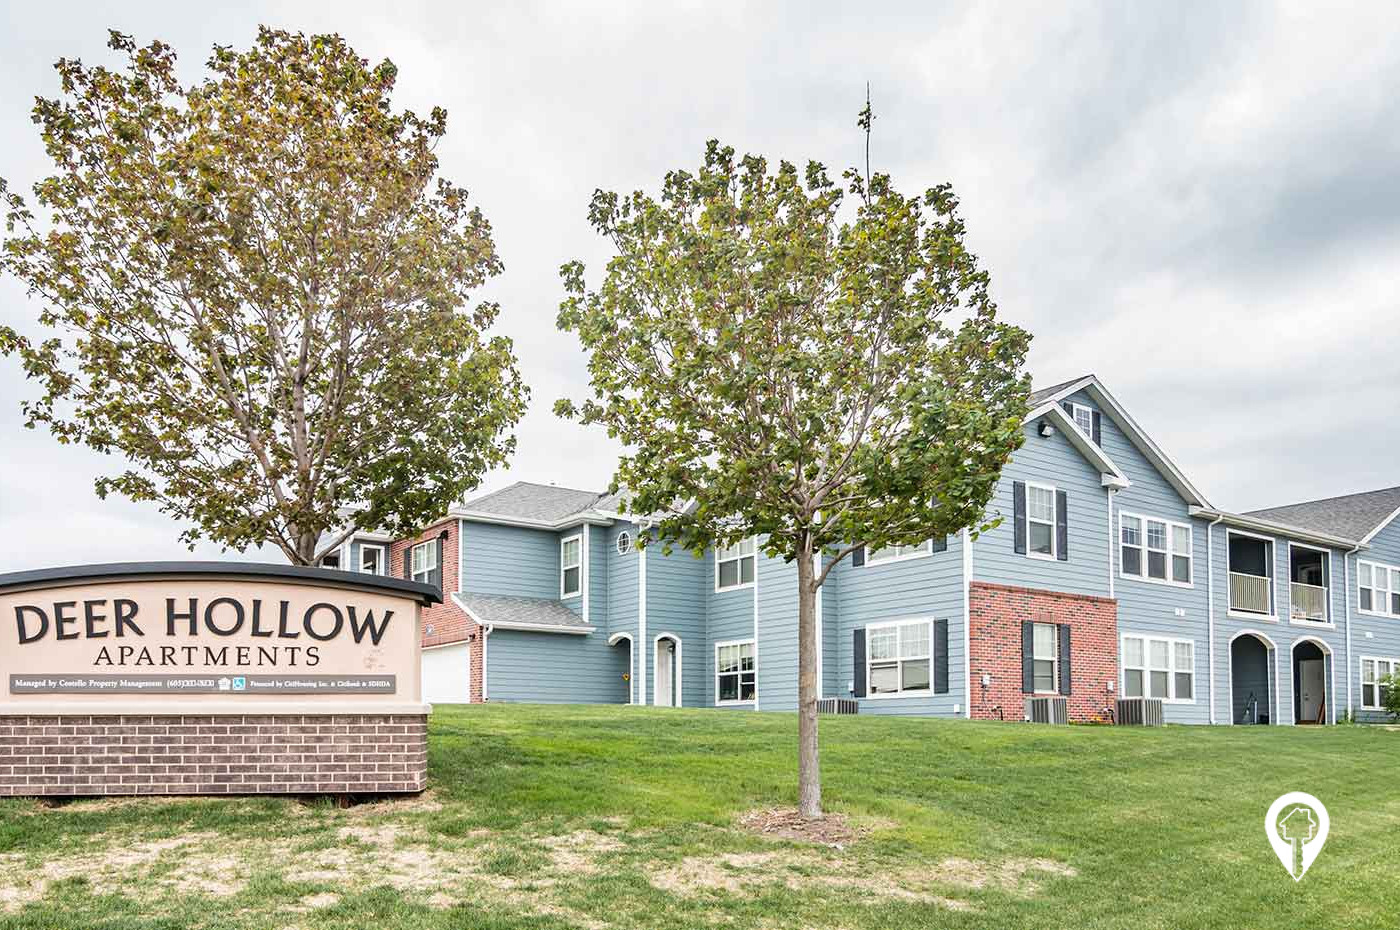 Deer Hollow Apartments Video Tour